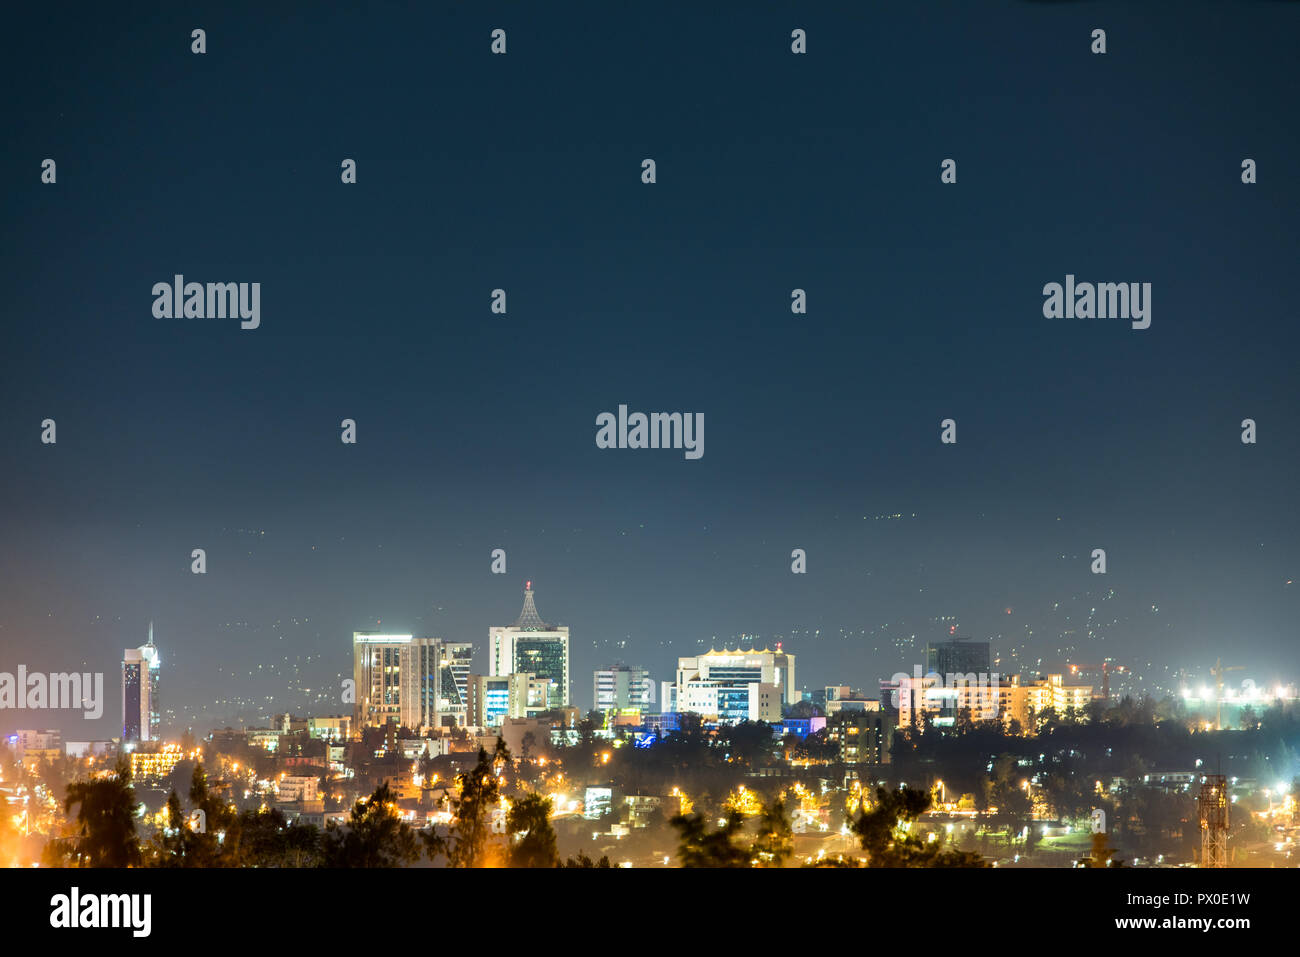 A wide view of Kigali city skyline lit up at night, under a deep blue evening sky - Stock Image